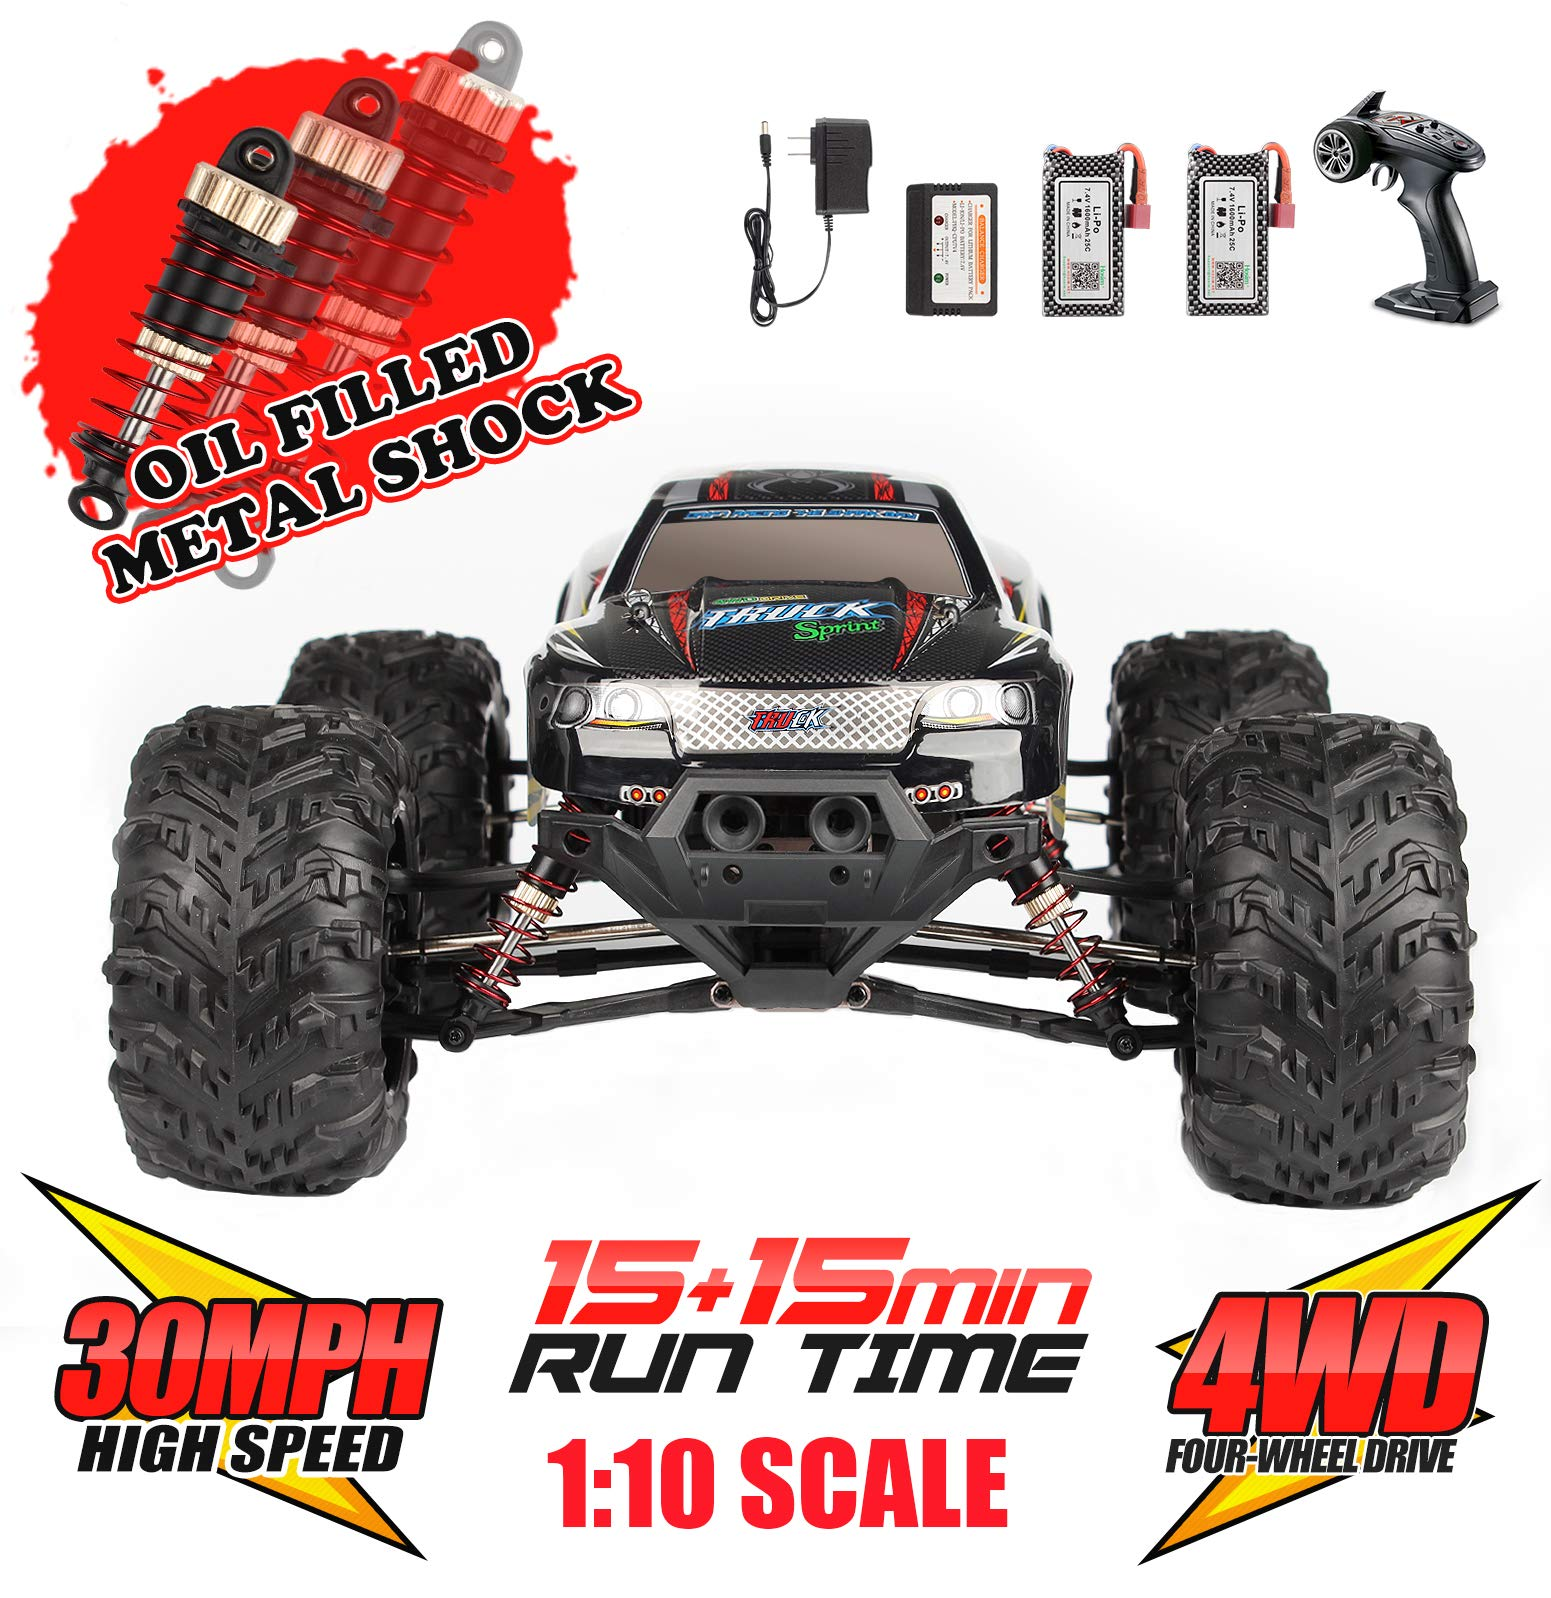 Hosim Large Size 1:10 Scale High Speed 30MPH 4WD 2.4Ghz Remote Control Truck Upgraded 9125 Radio Controlled Off-Road Electronic Monster Truck R/C RTR Hobby RC Car | 2 Batteries | 6 Oil Filled Shocks| by Hosim